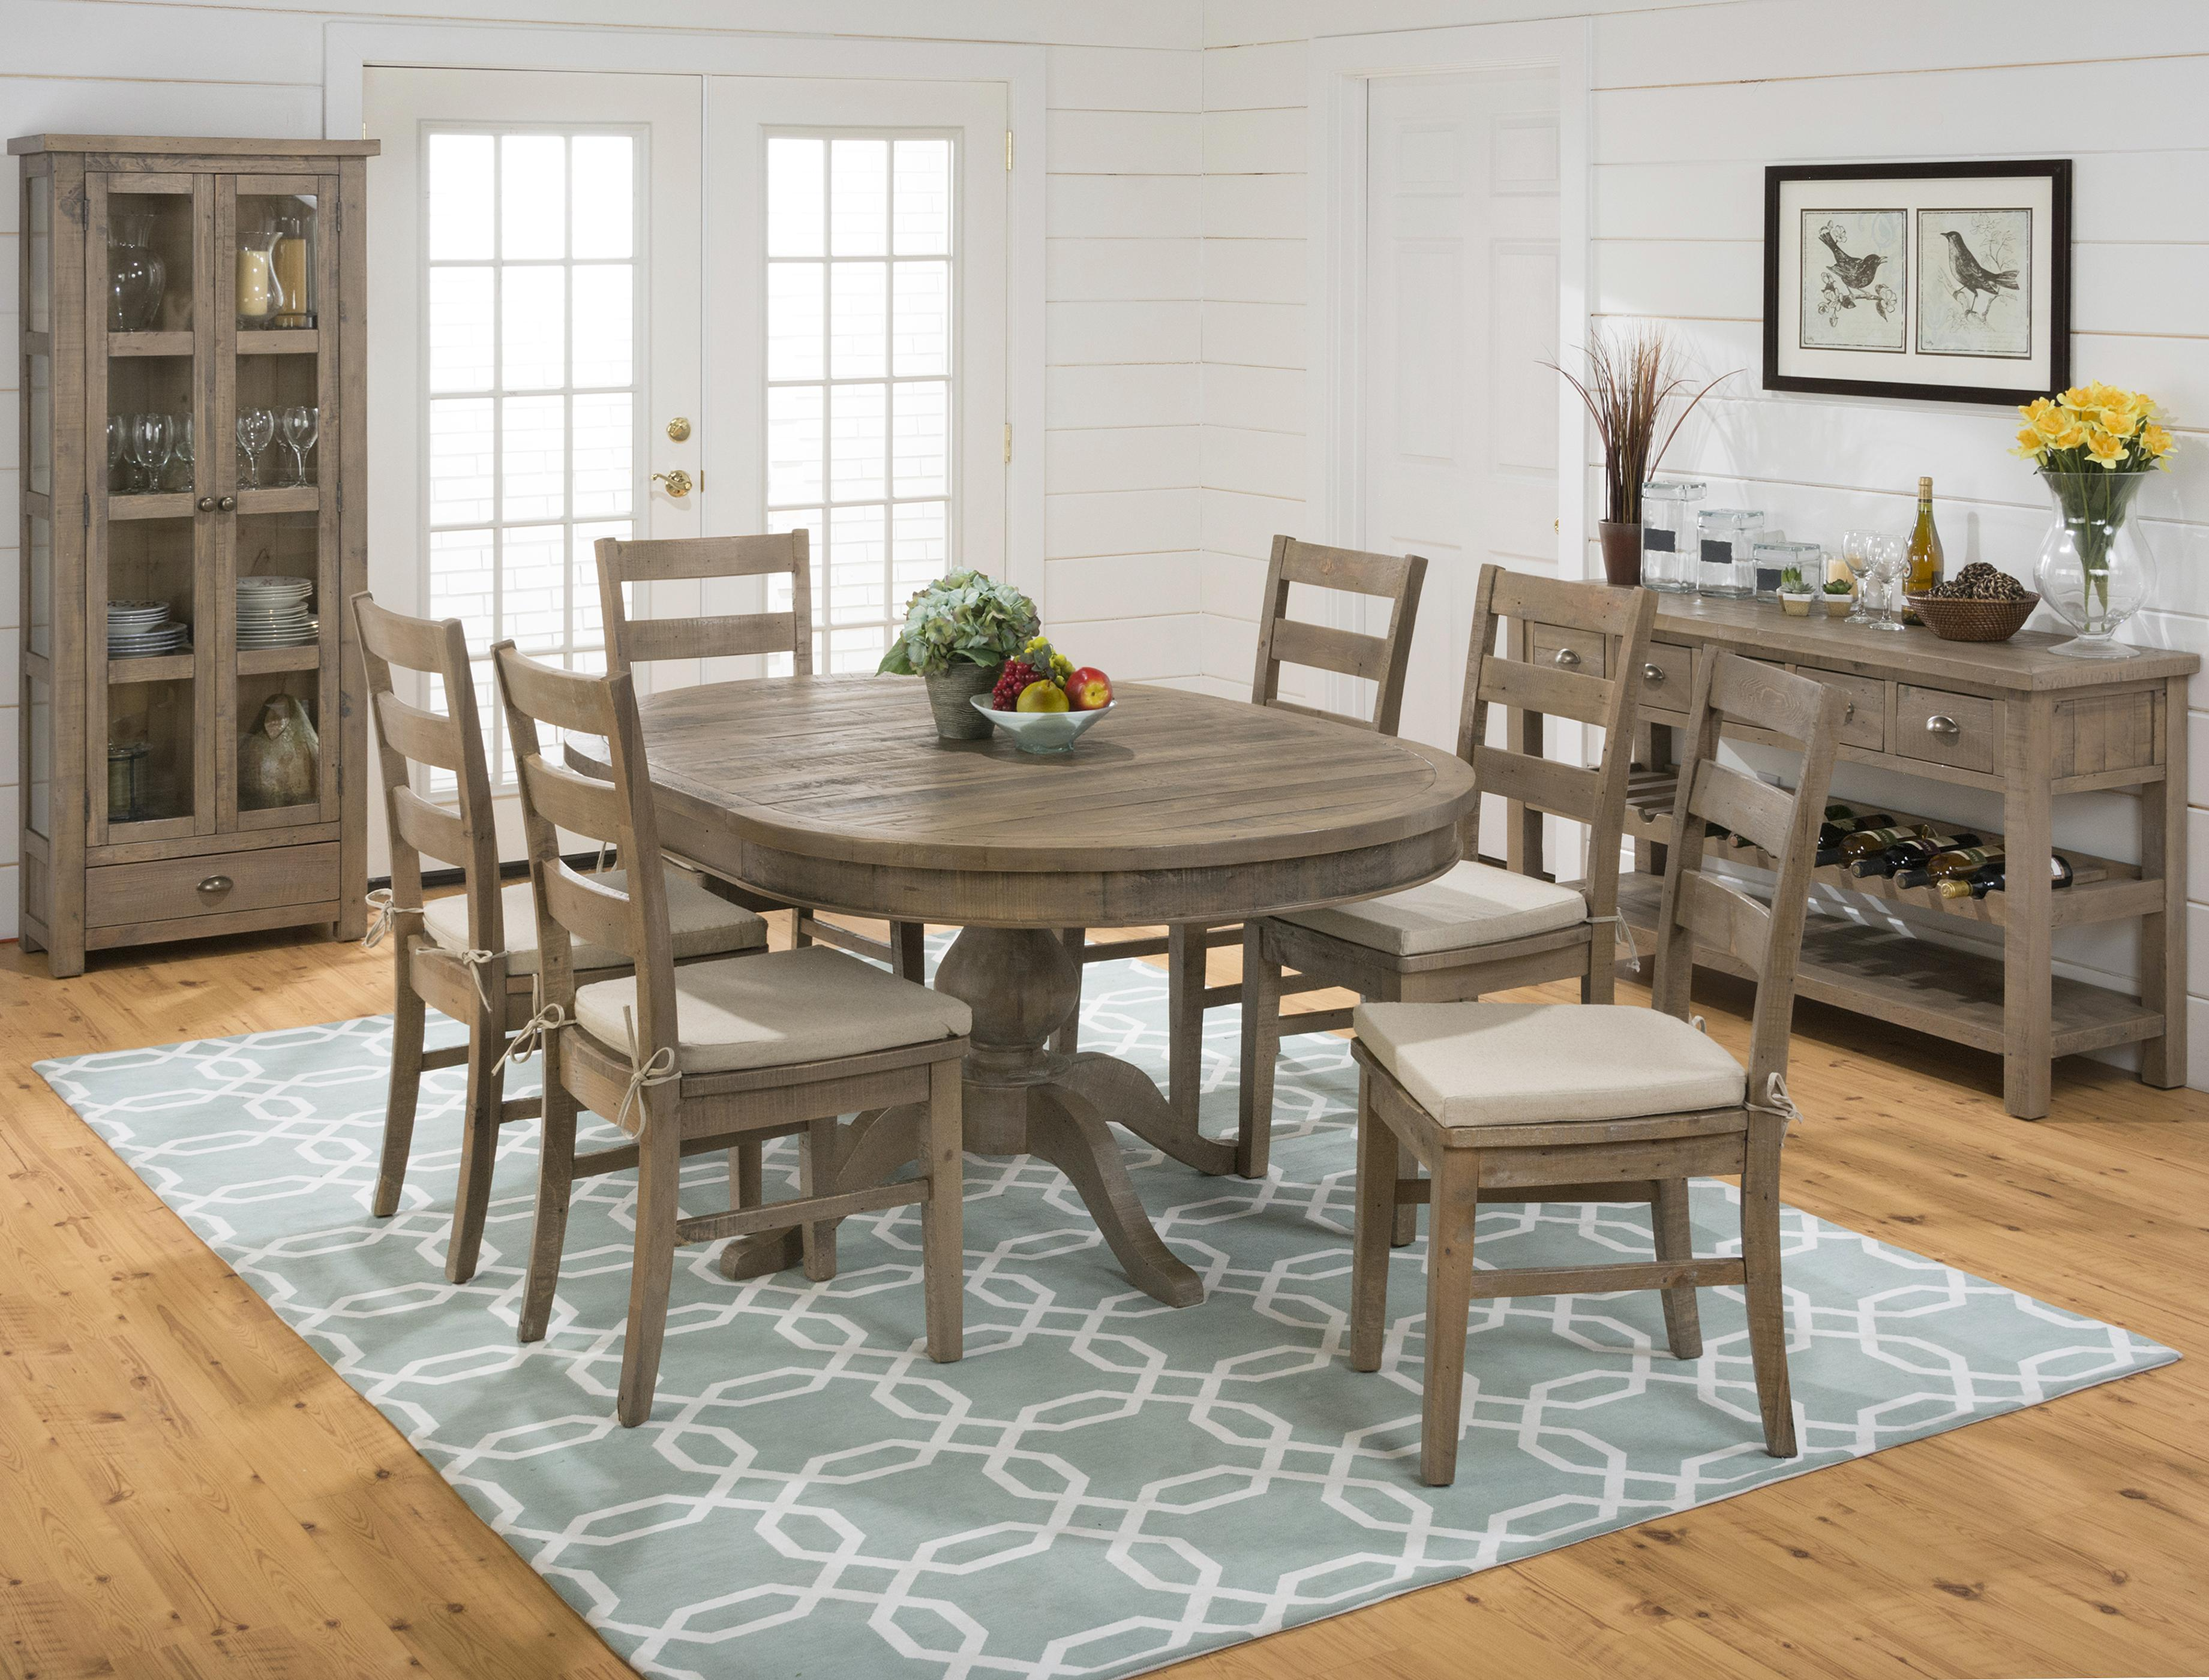 Jofran Slater Mill Pine Casual Dining Room Group | Powellu0027s Furniture And  Mattress | Casual Dining Room Groups